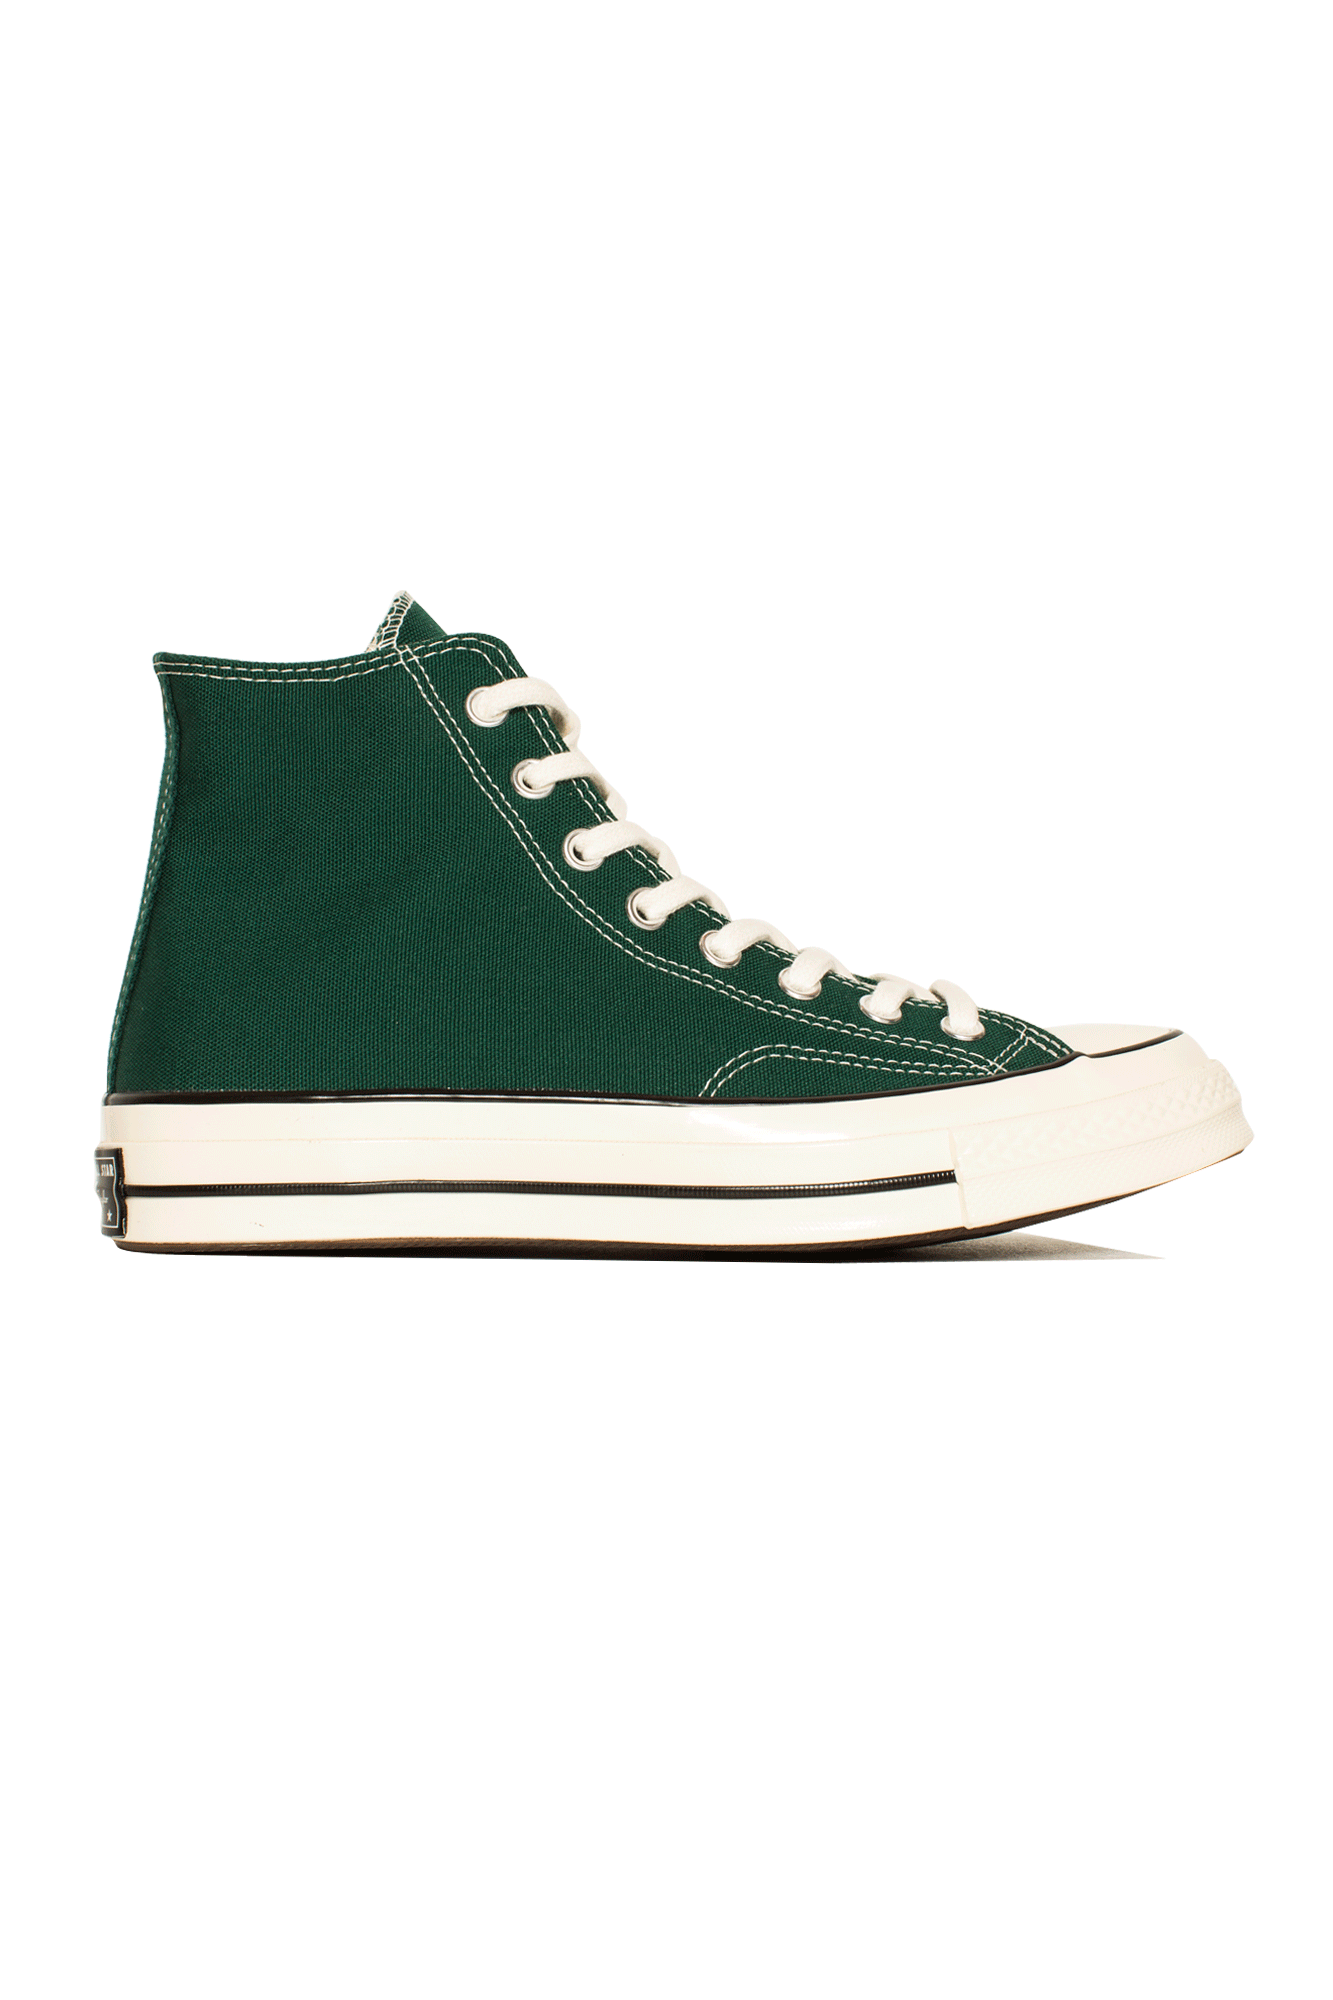 Converse Sneakers Chuck 70 Hi Green 168508C#000#333#7 - One Block Down